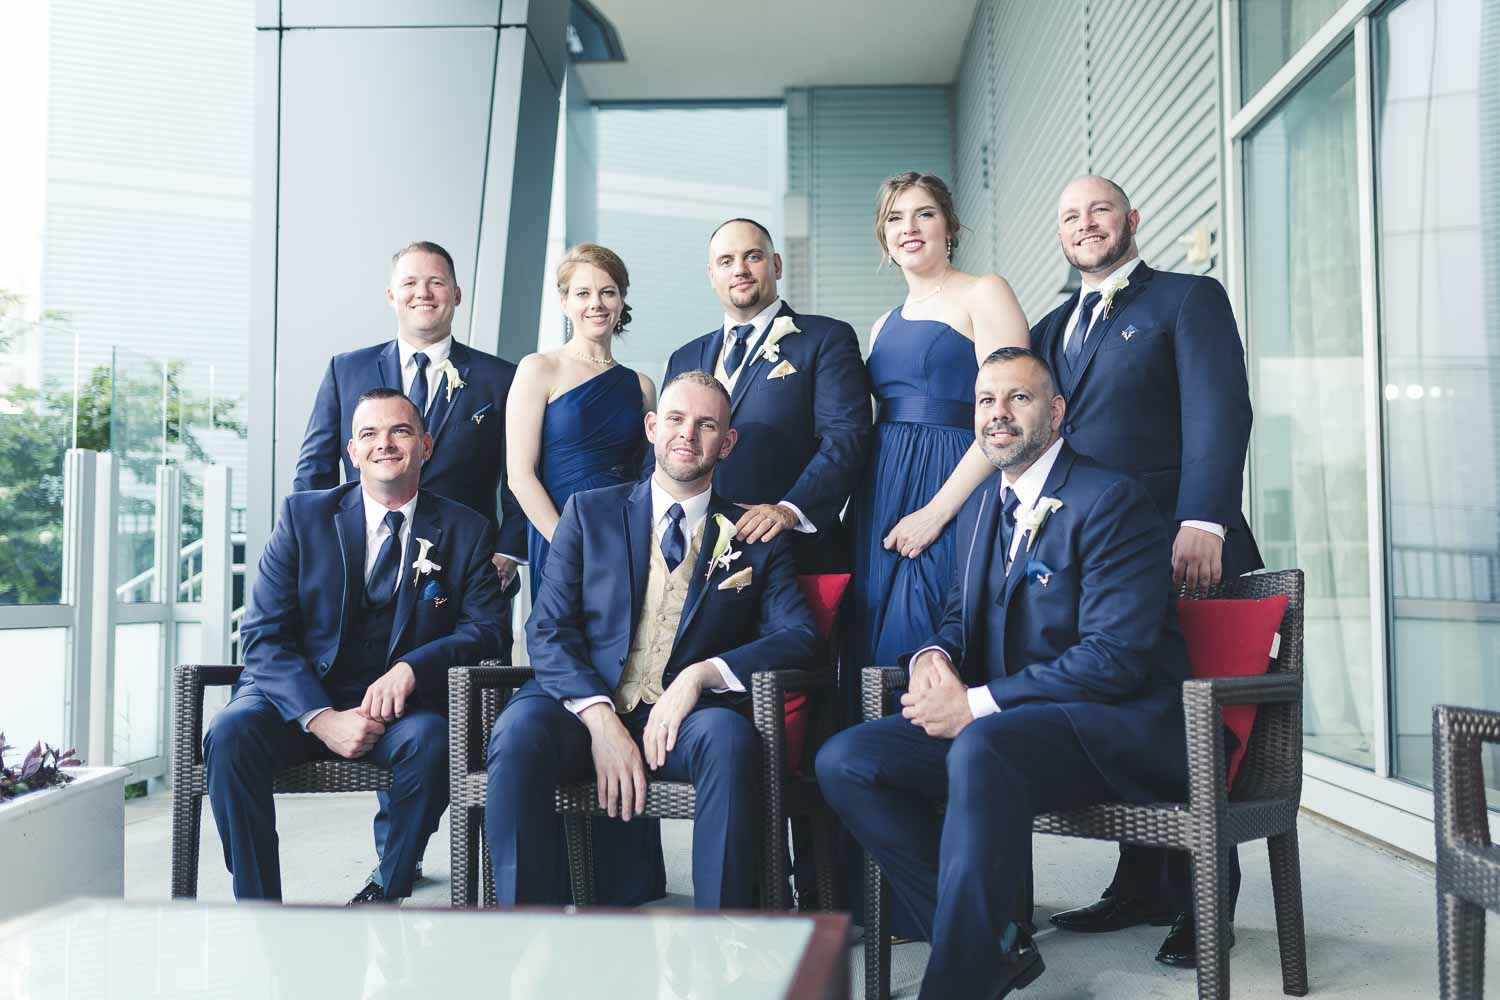 Group Photo - Philly Wedding